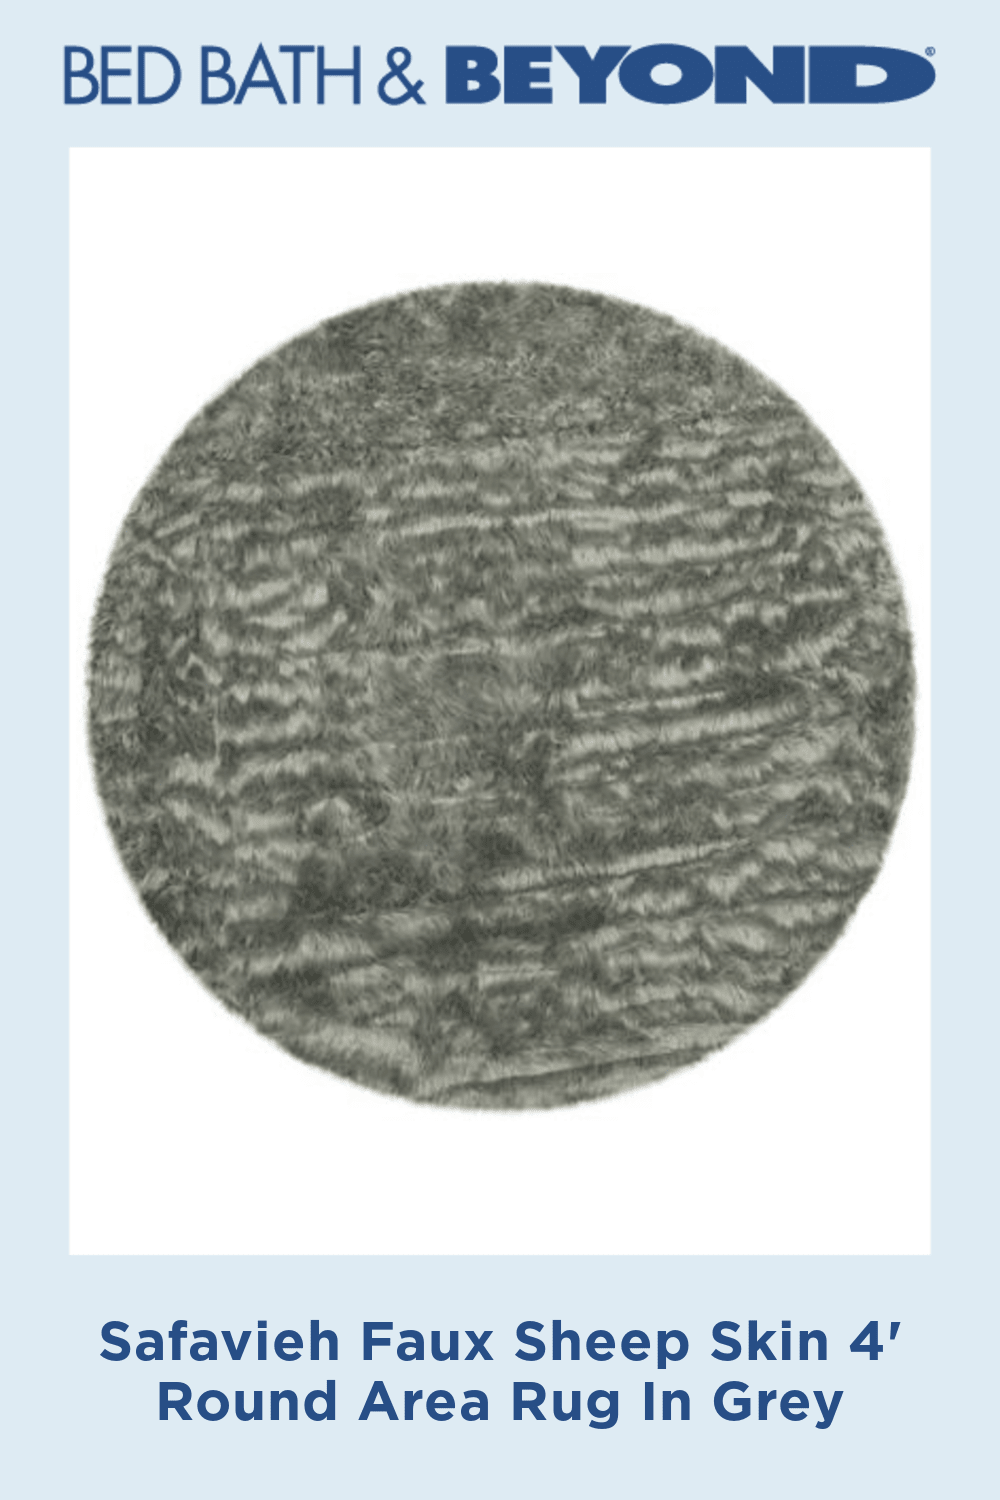 Safavieh Faux Sheep Skin 4 Foot Round Area Rug In Grey Round